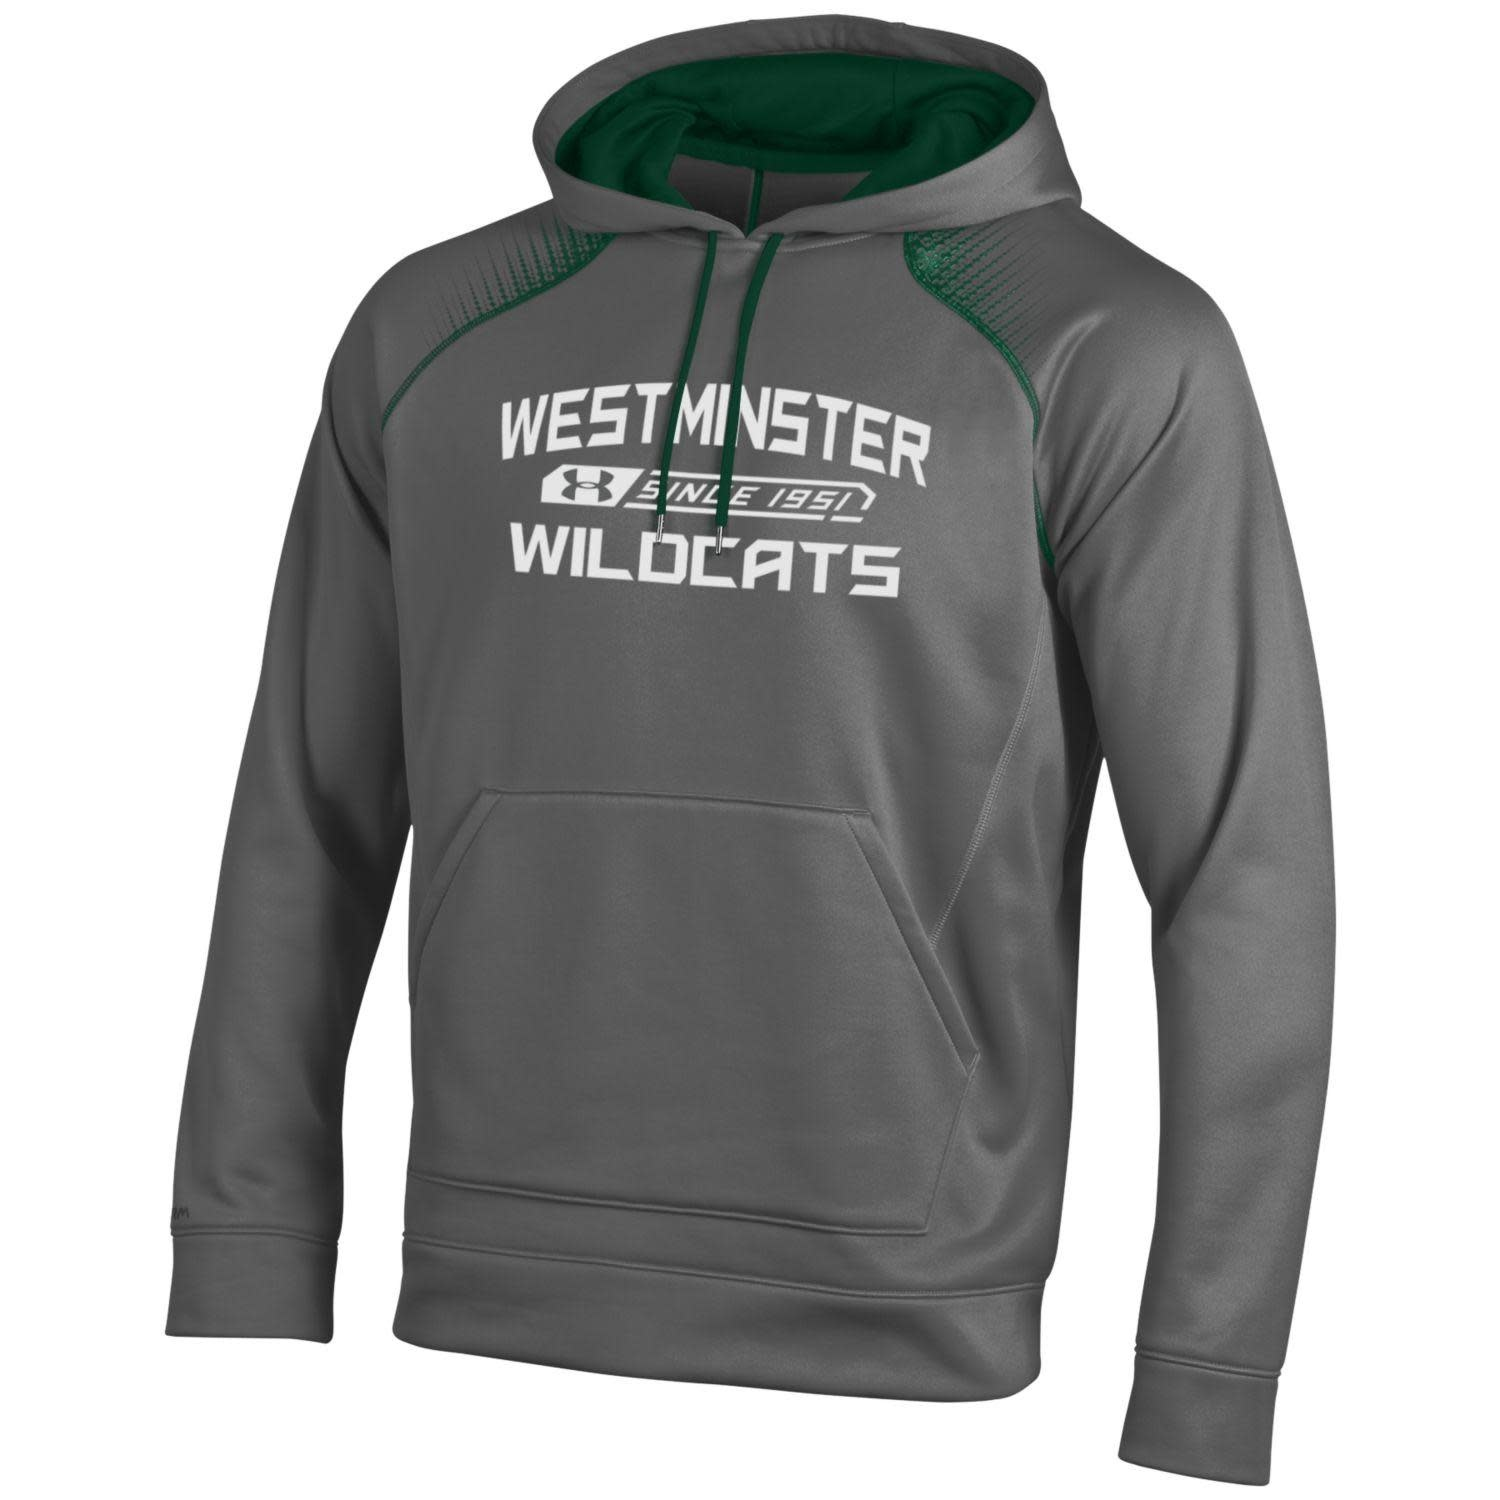 Sweatshirt: UA Medium Graphite w/White Westminster Wildcats since 1951